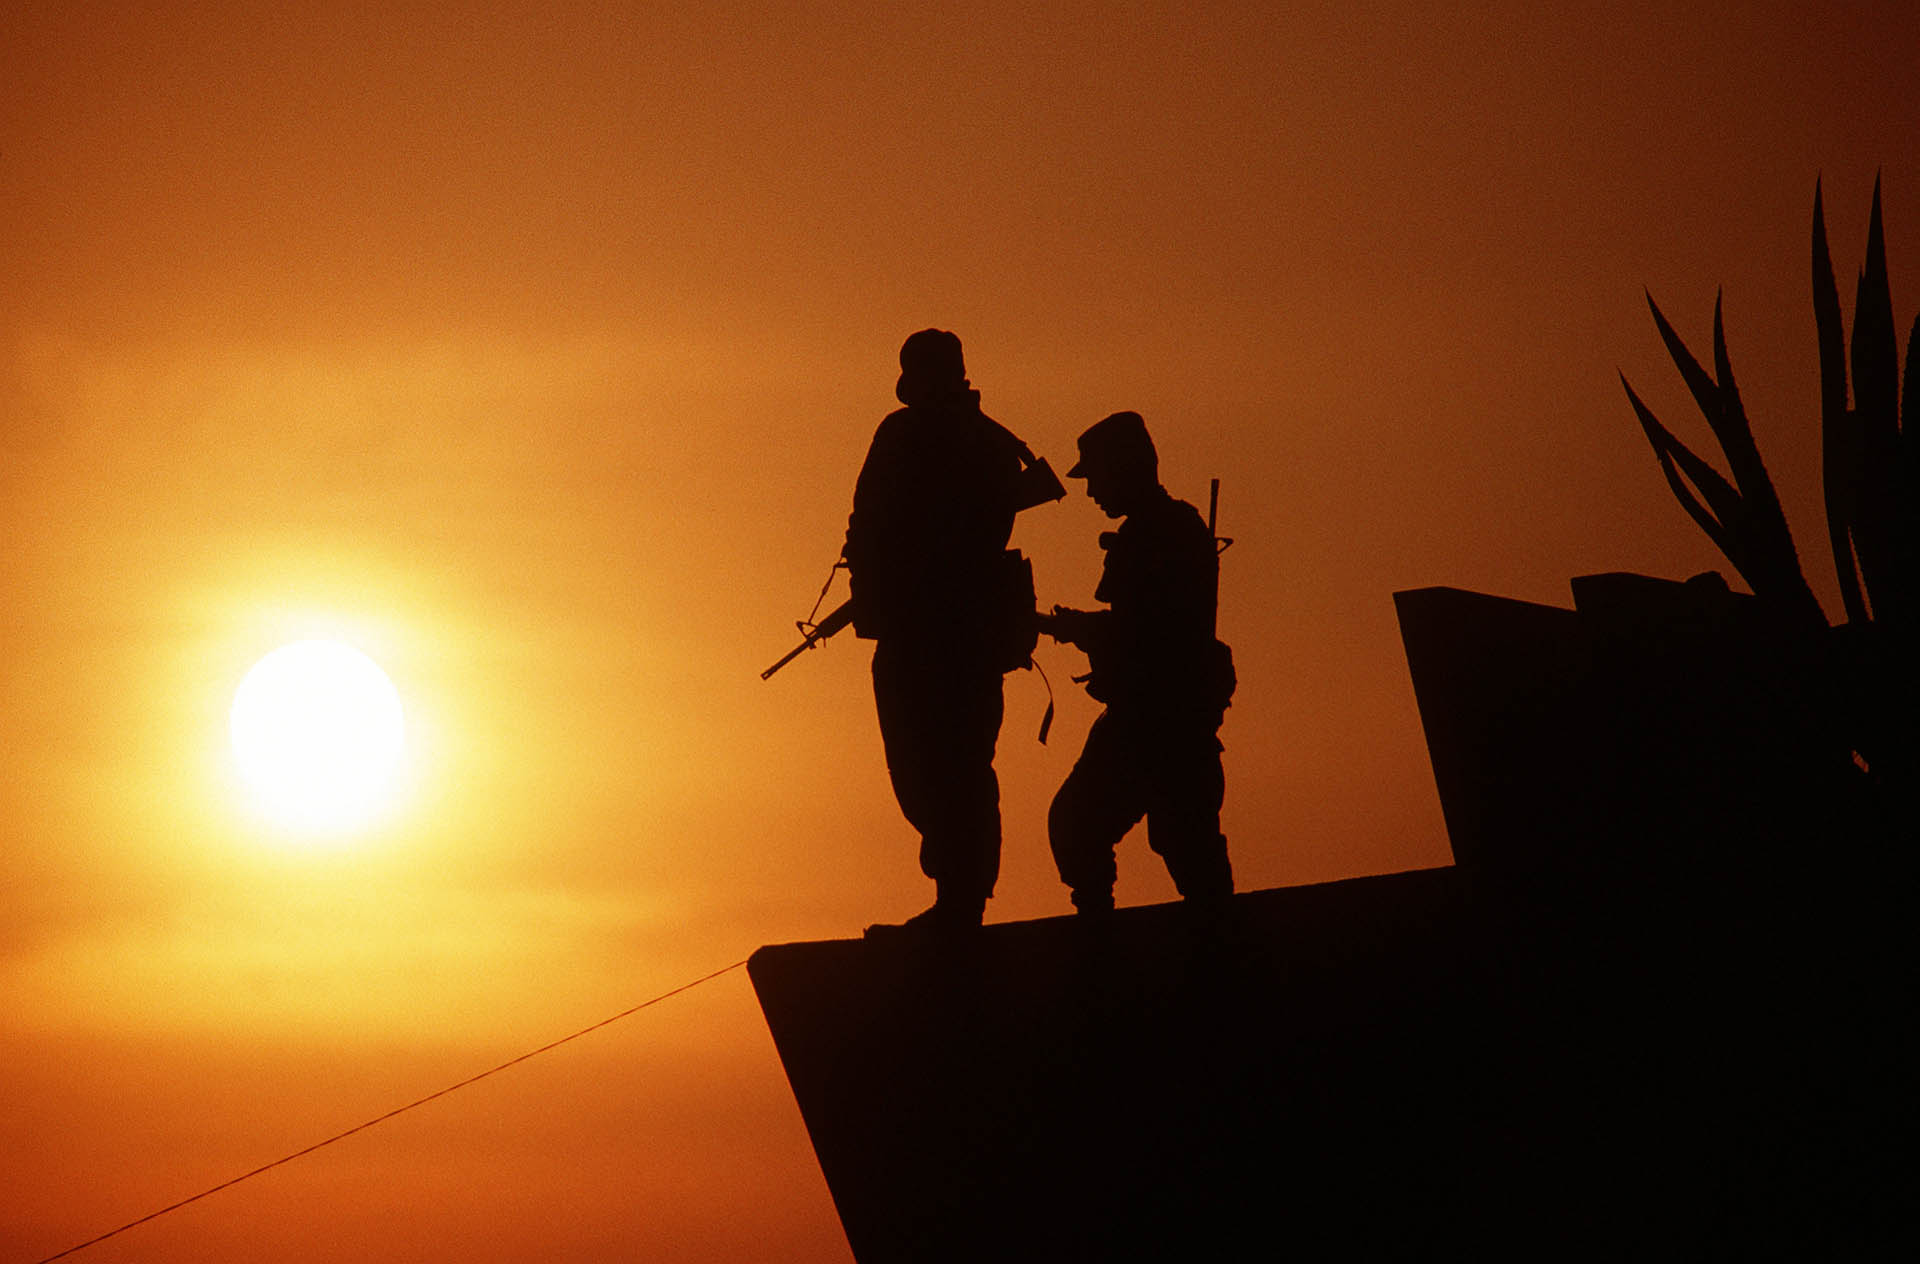 army wallpaper2 Best Army Silhouetted Wallpapers